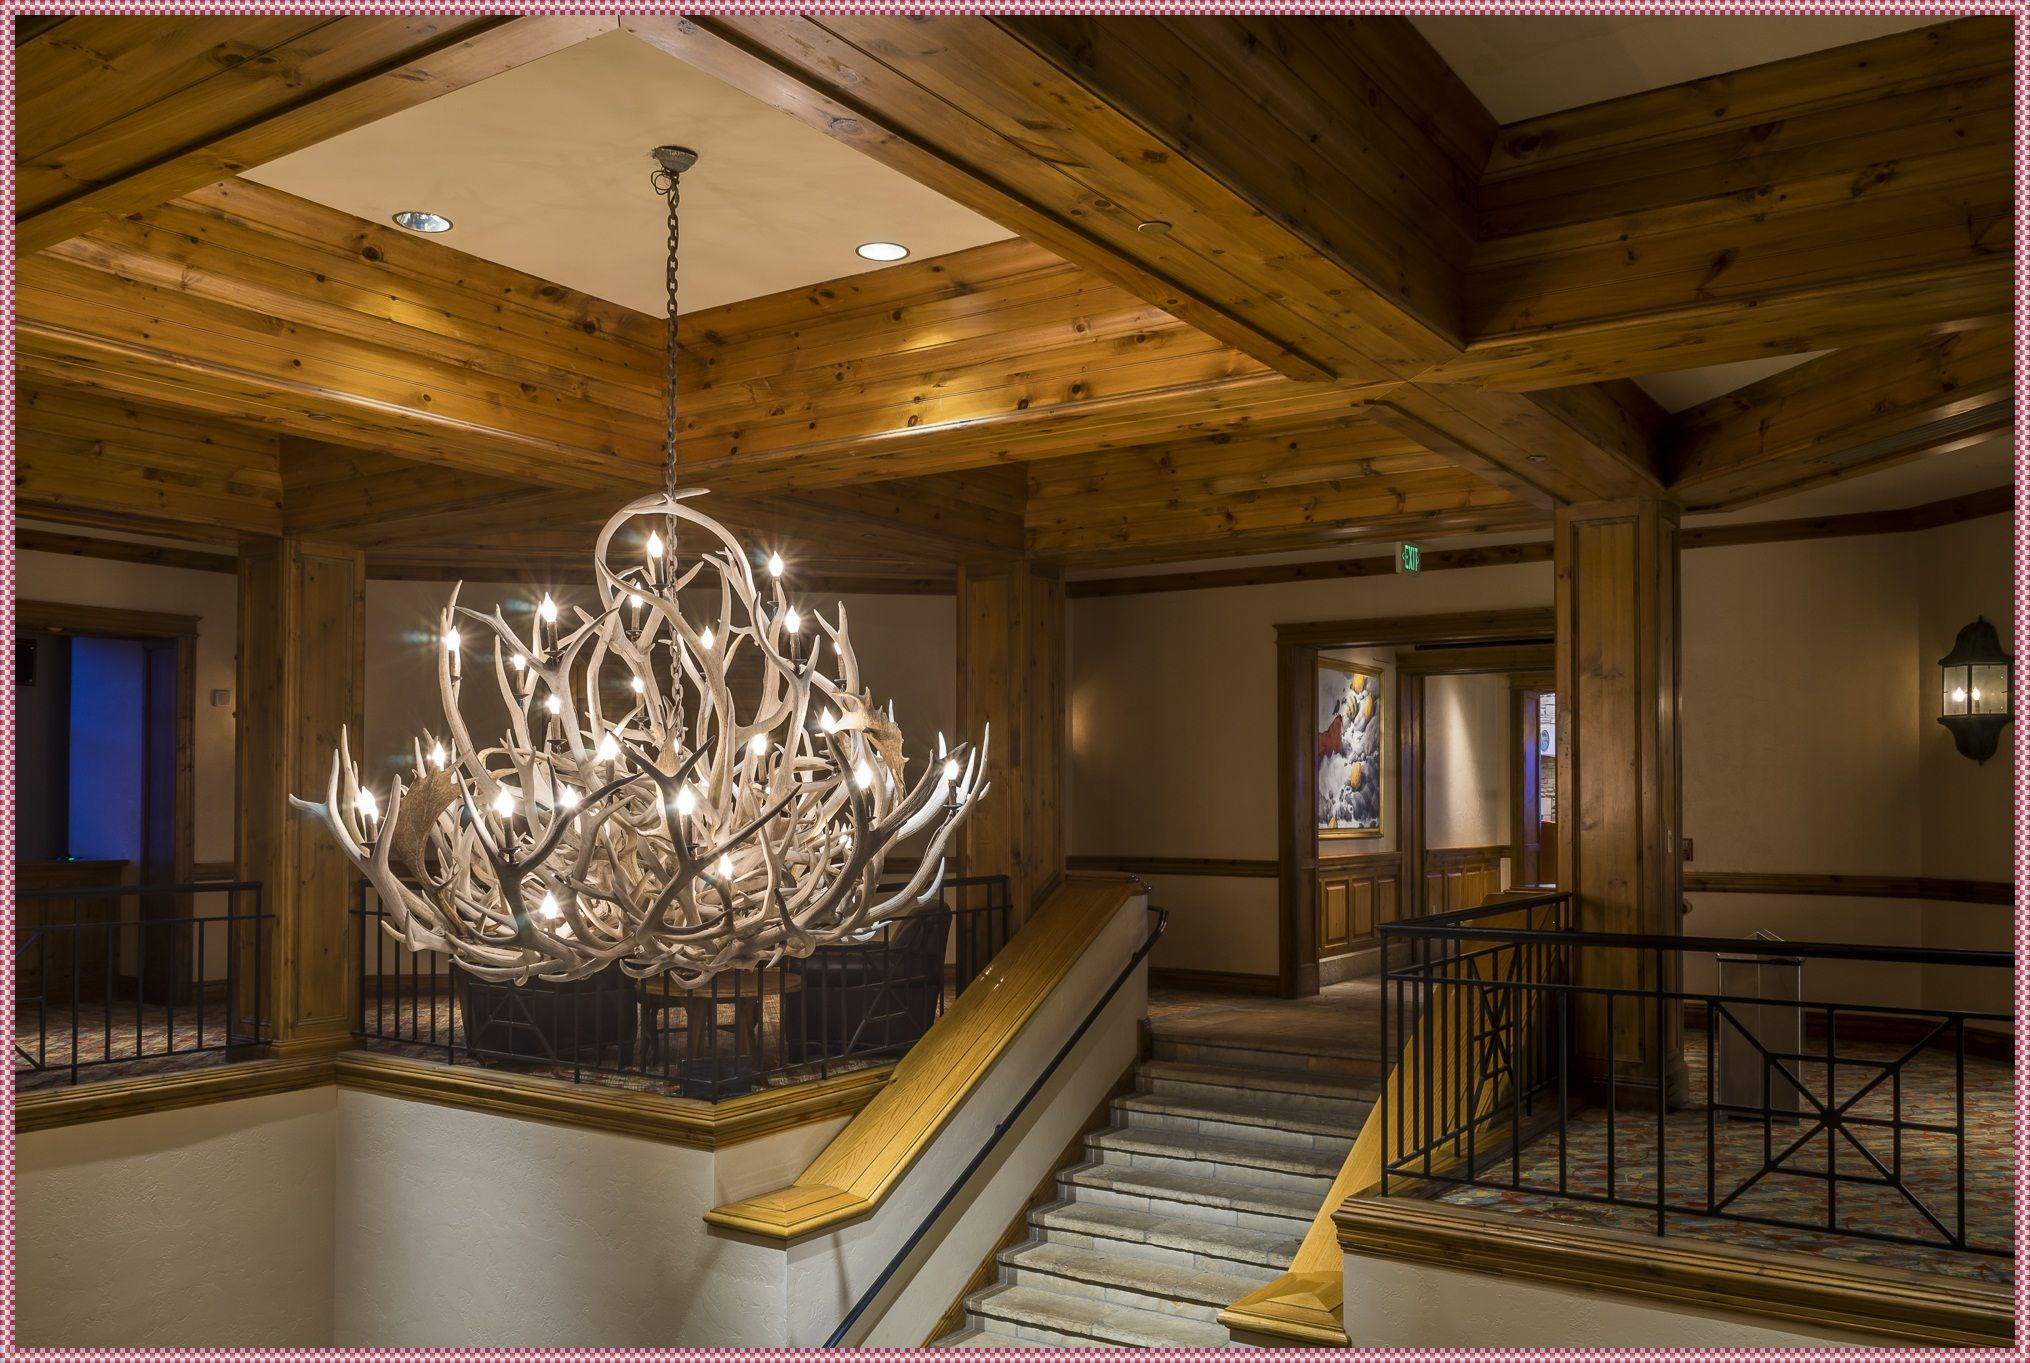 Lamps Antler Chandelier With Crystals Downlight Shades